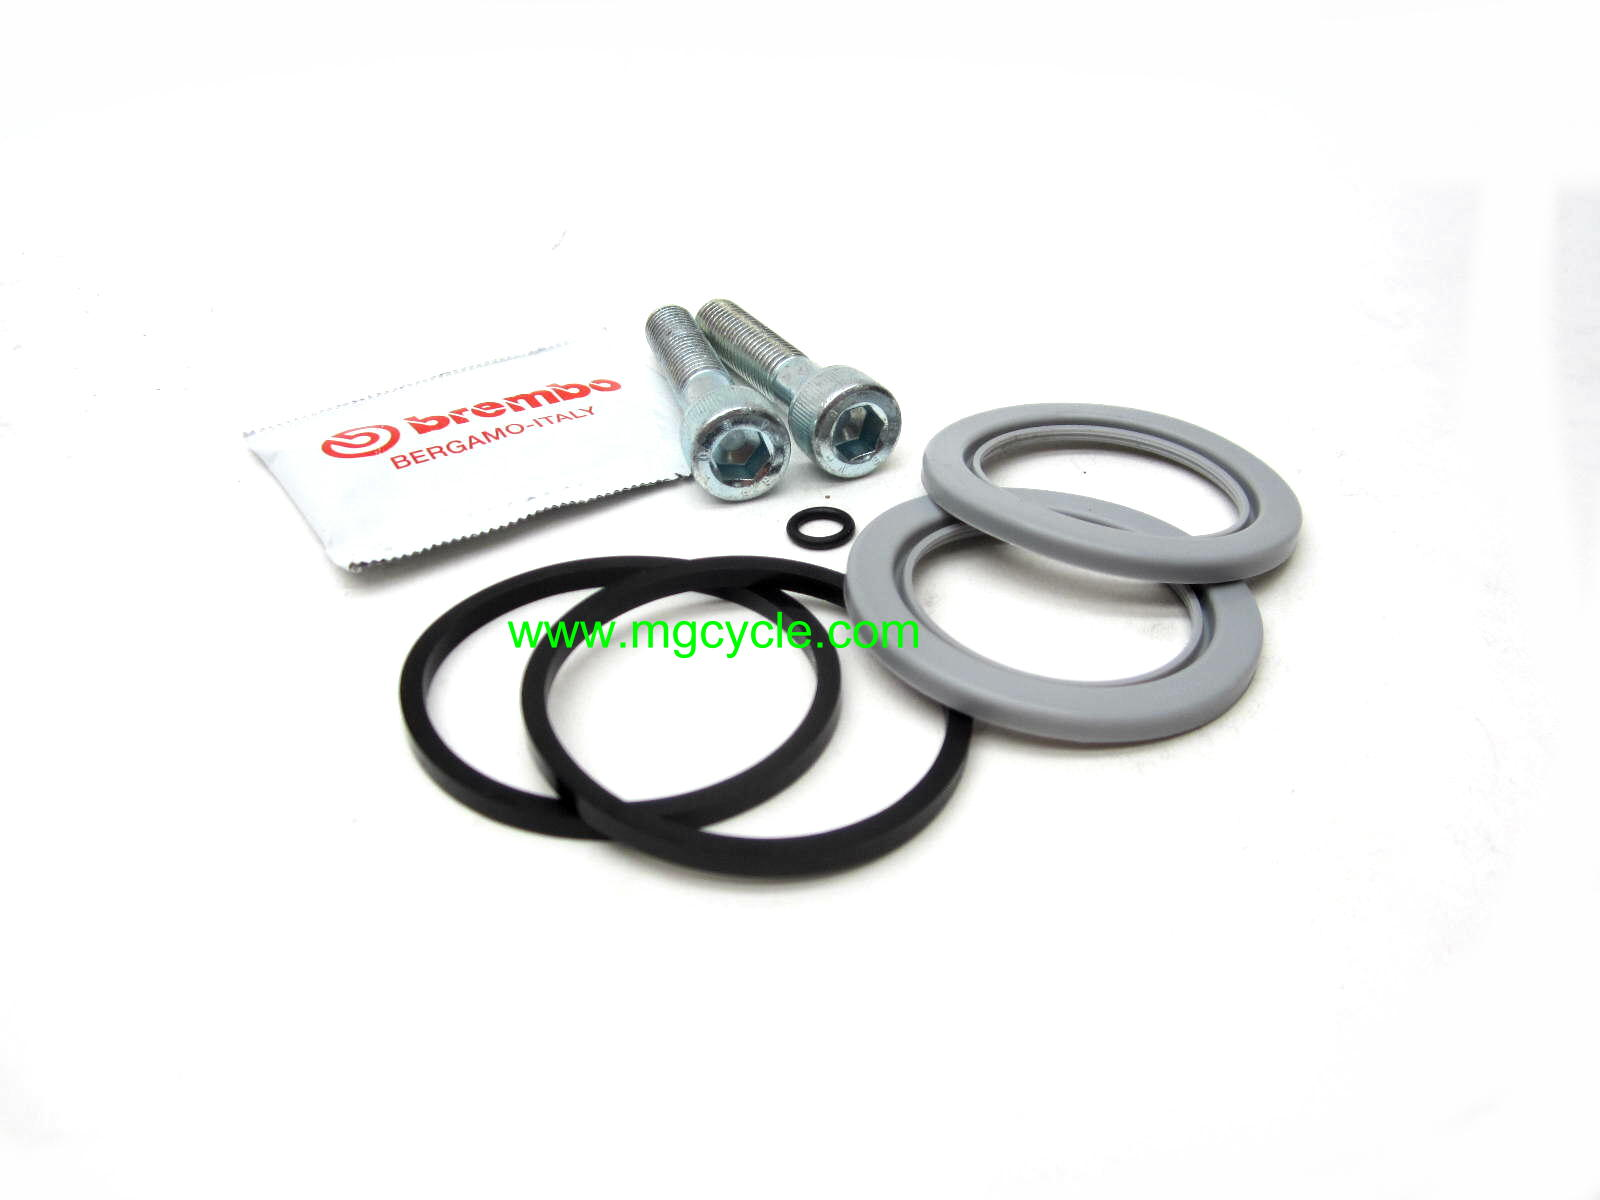 Brembo caliper seal kit for F09 caliper, rear SP1000